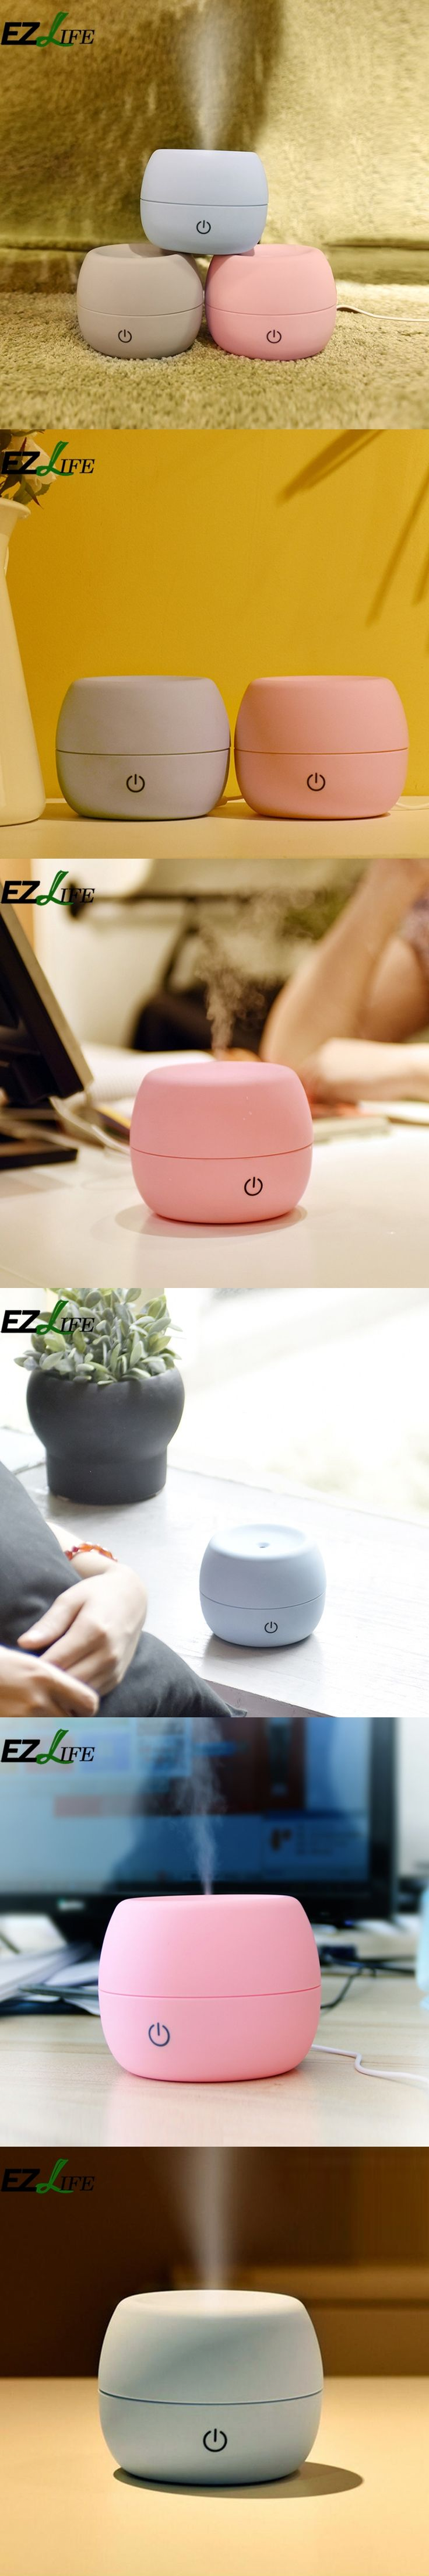 New EZLIFE Colorful Air Humidifier Mini Portable Air Refreshing Humidifier Brumizador Esencial Air Freshener For Homes WX0106